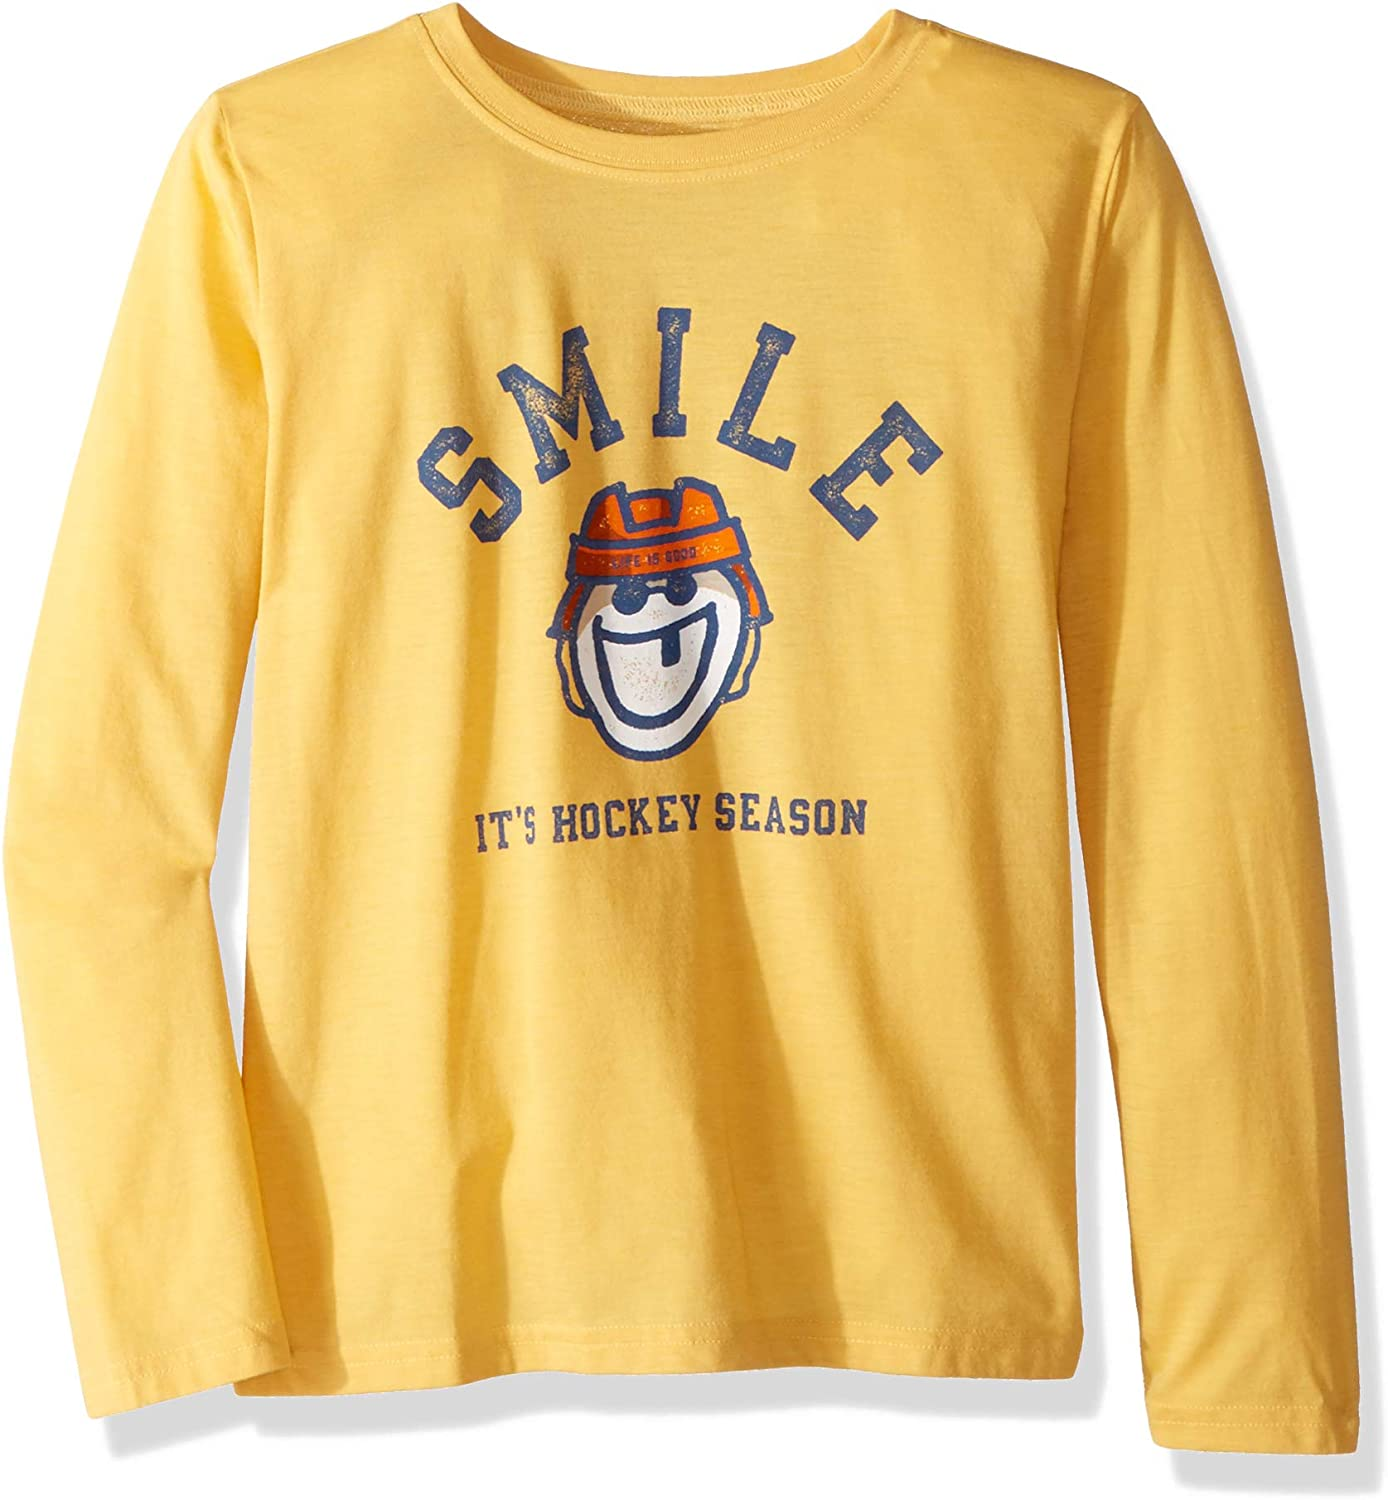 Life is Good Boys Crusher Graphic Long Sleeve T-Shirt Collection,Hockey Season,Large